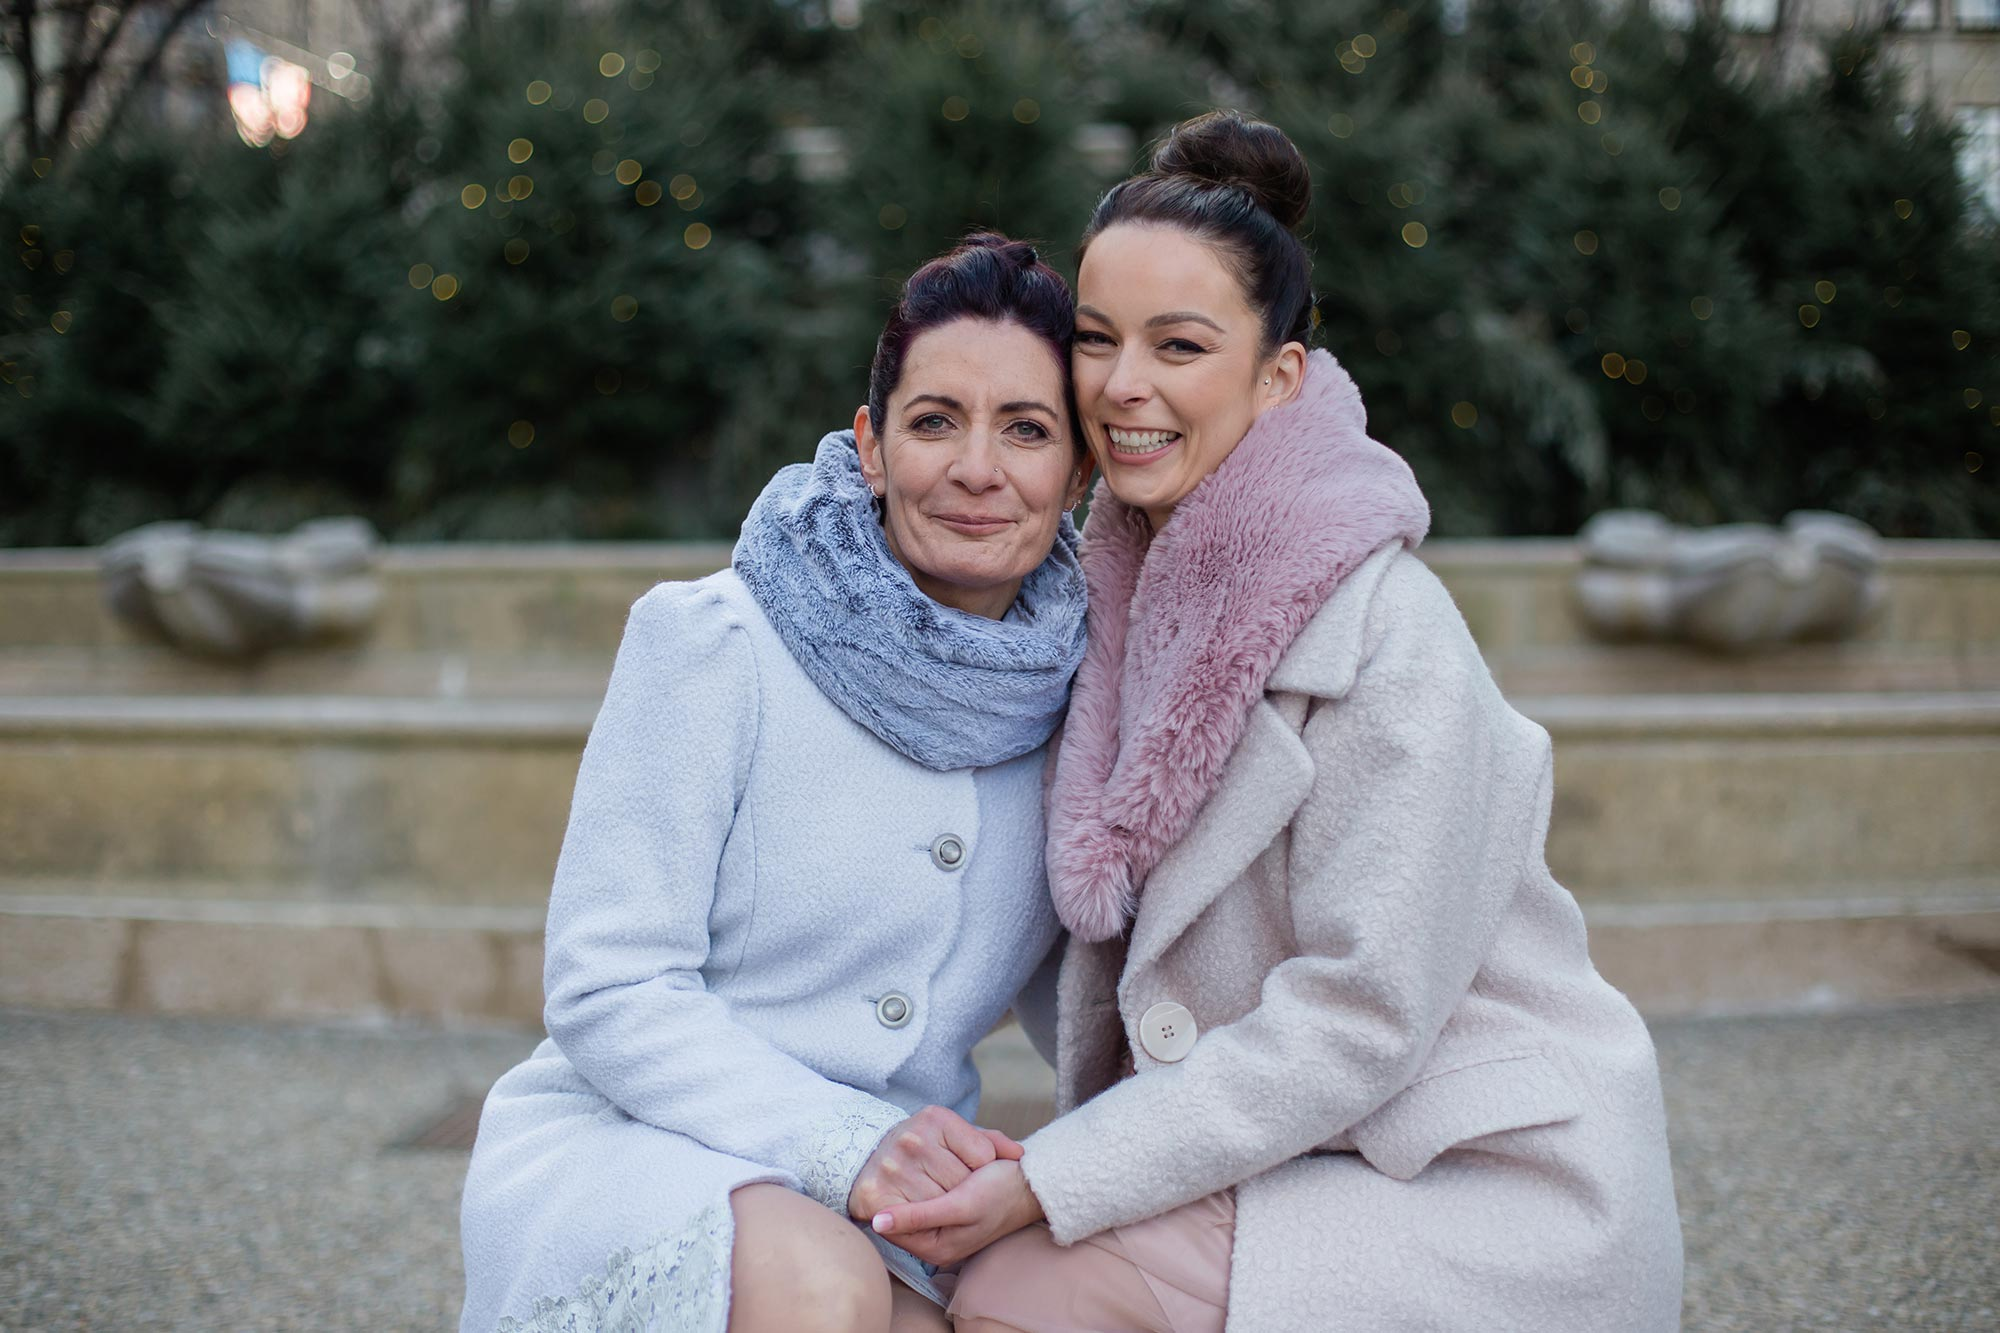 queer irish central park winter elopement kate alison photography brides sitting on low step smiling